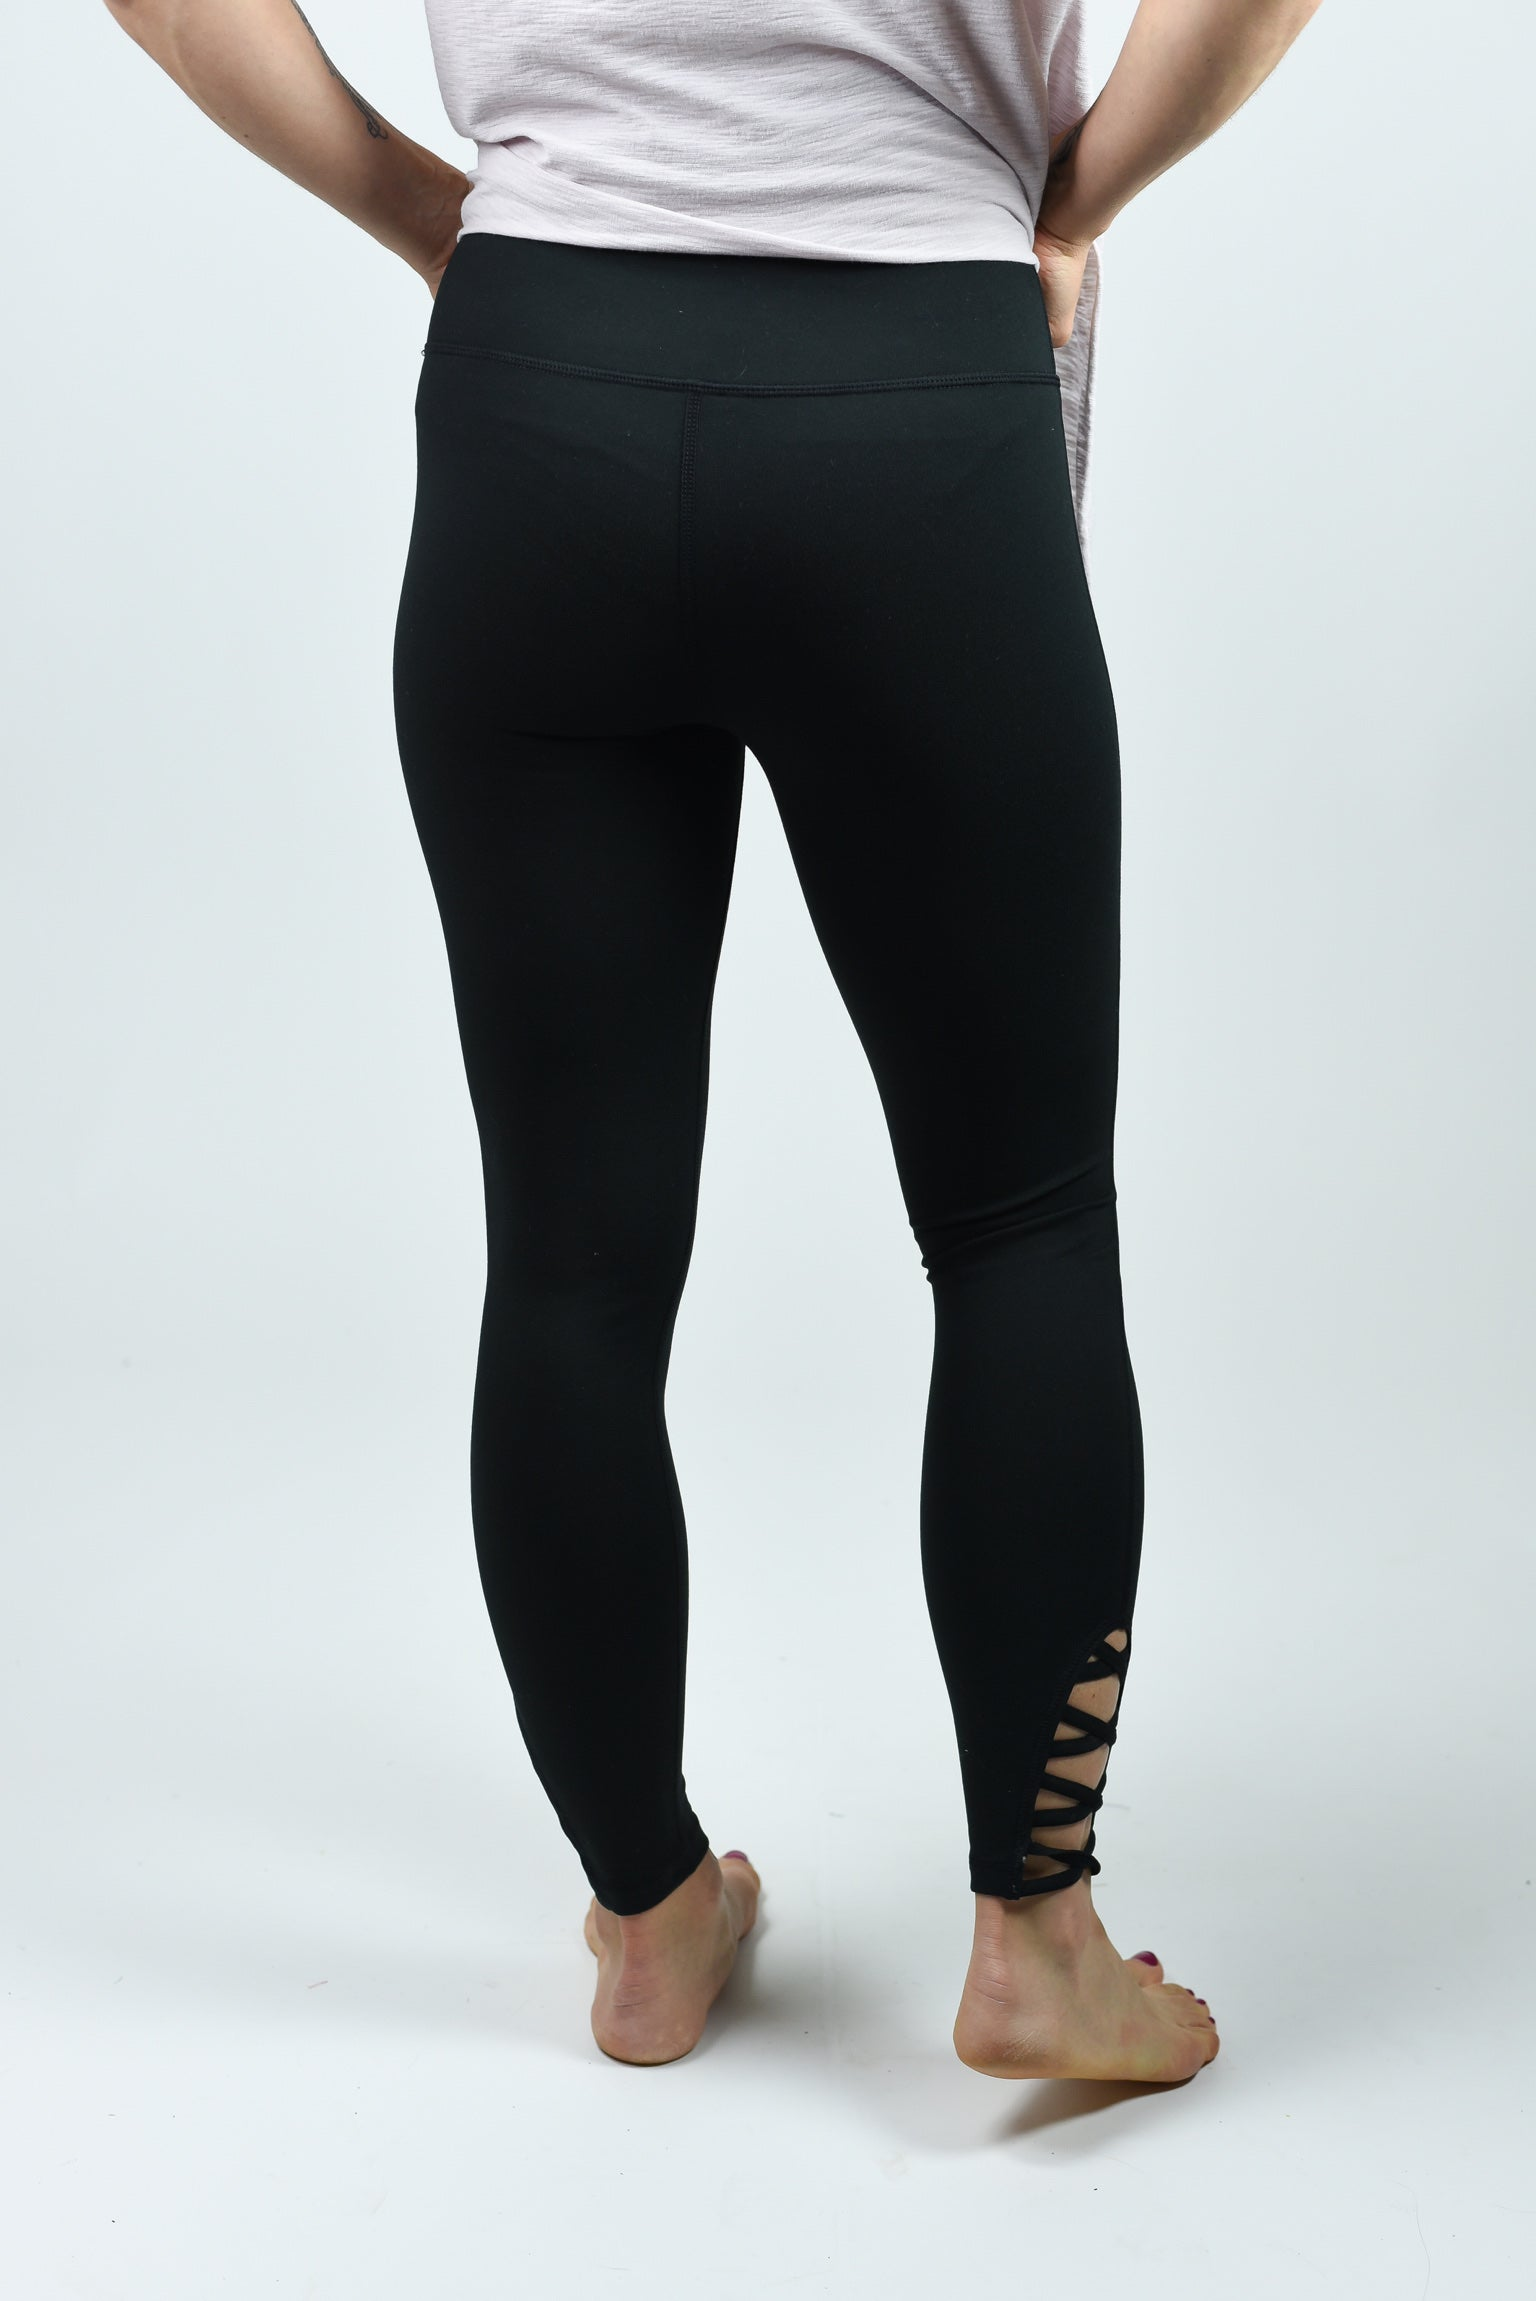 Pointe Taken Black Leggings